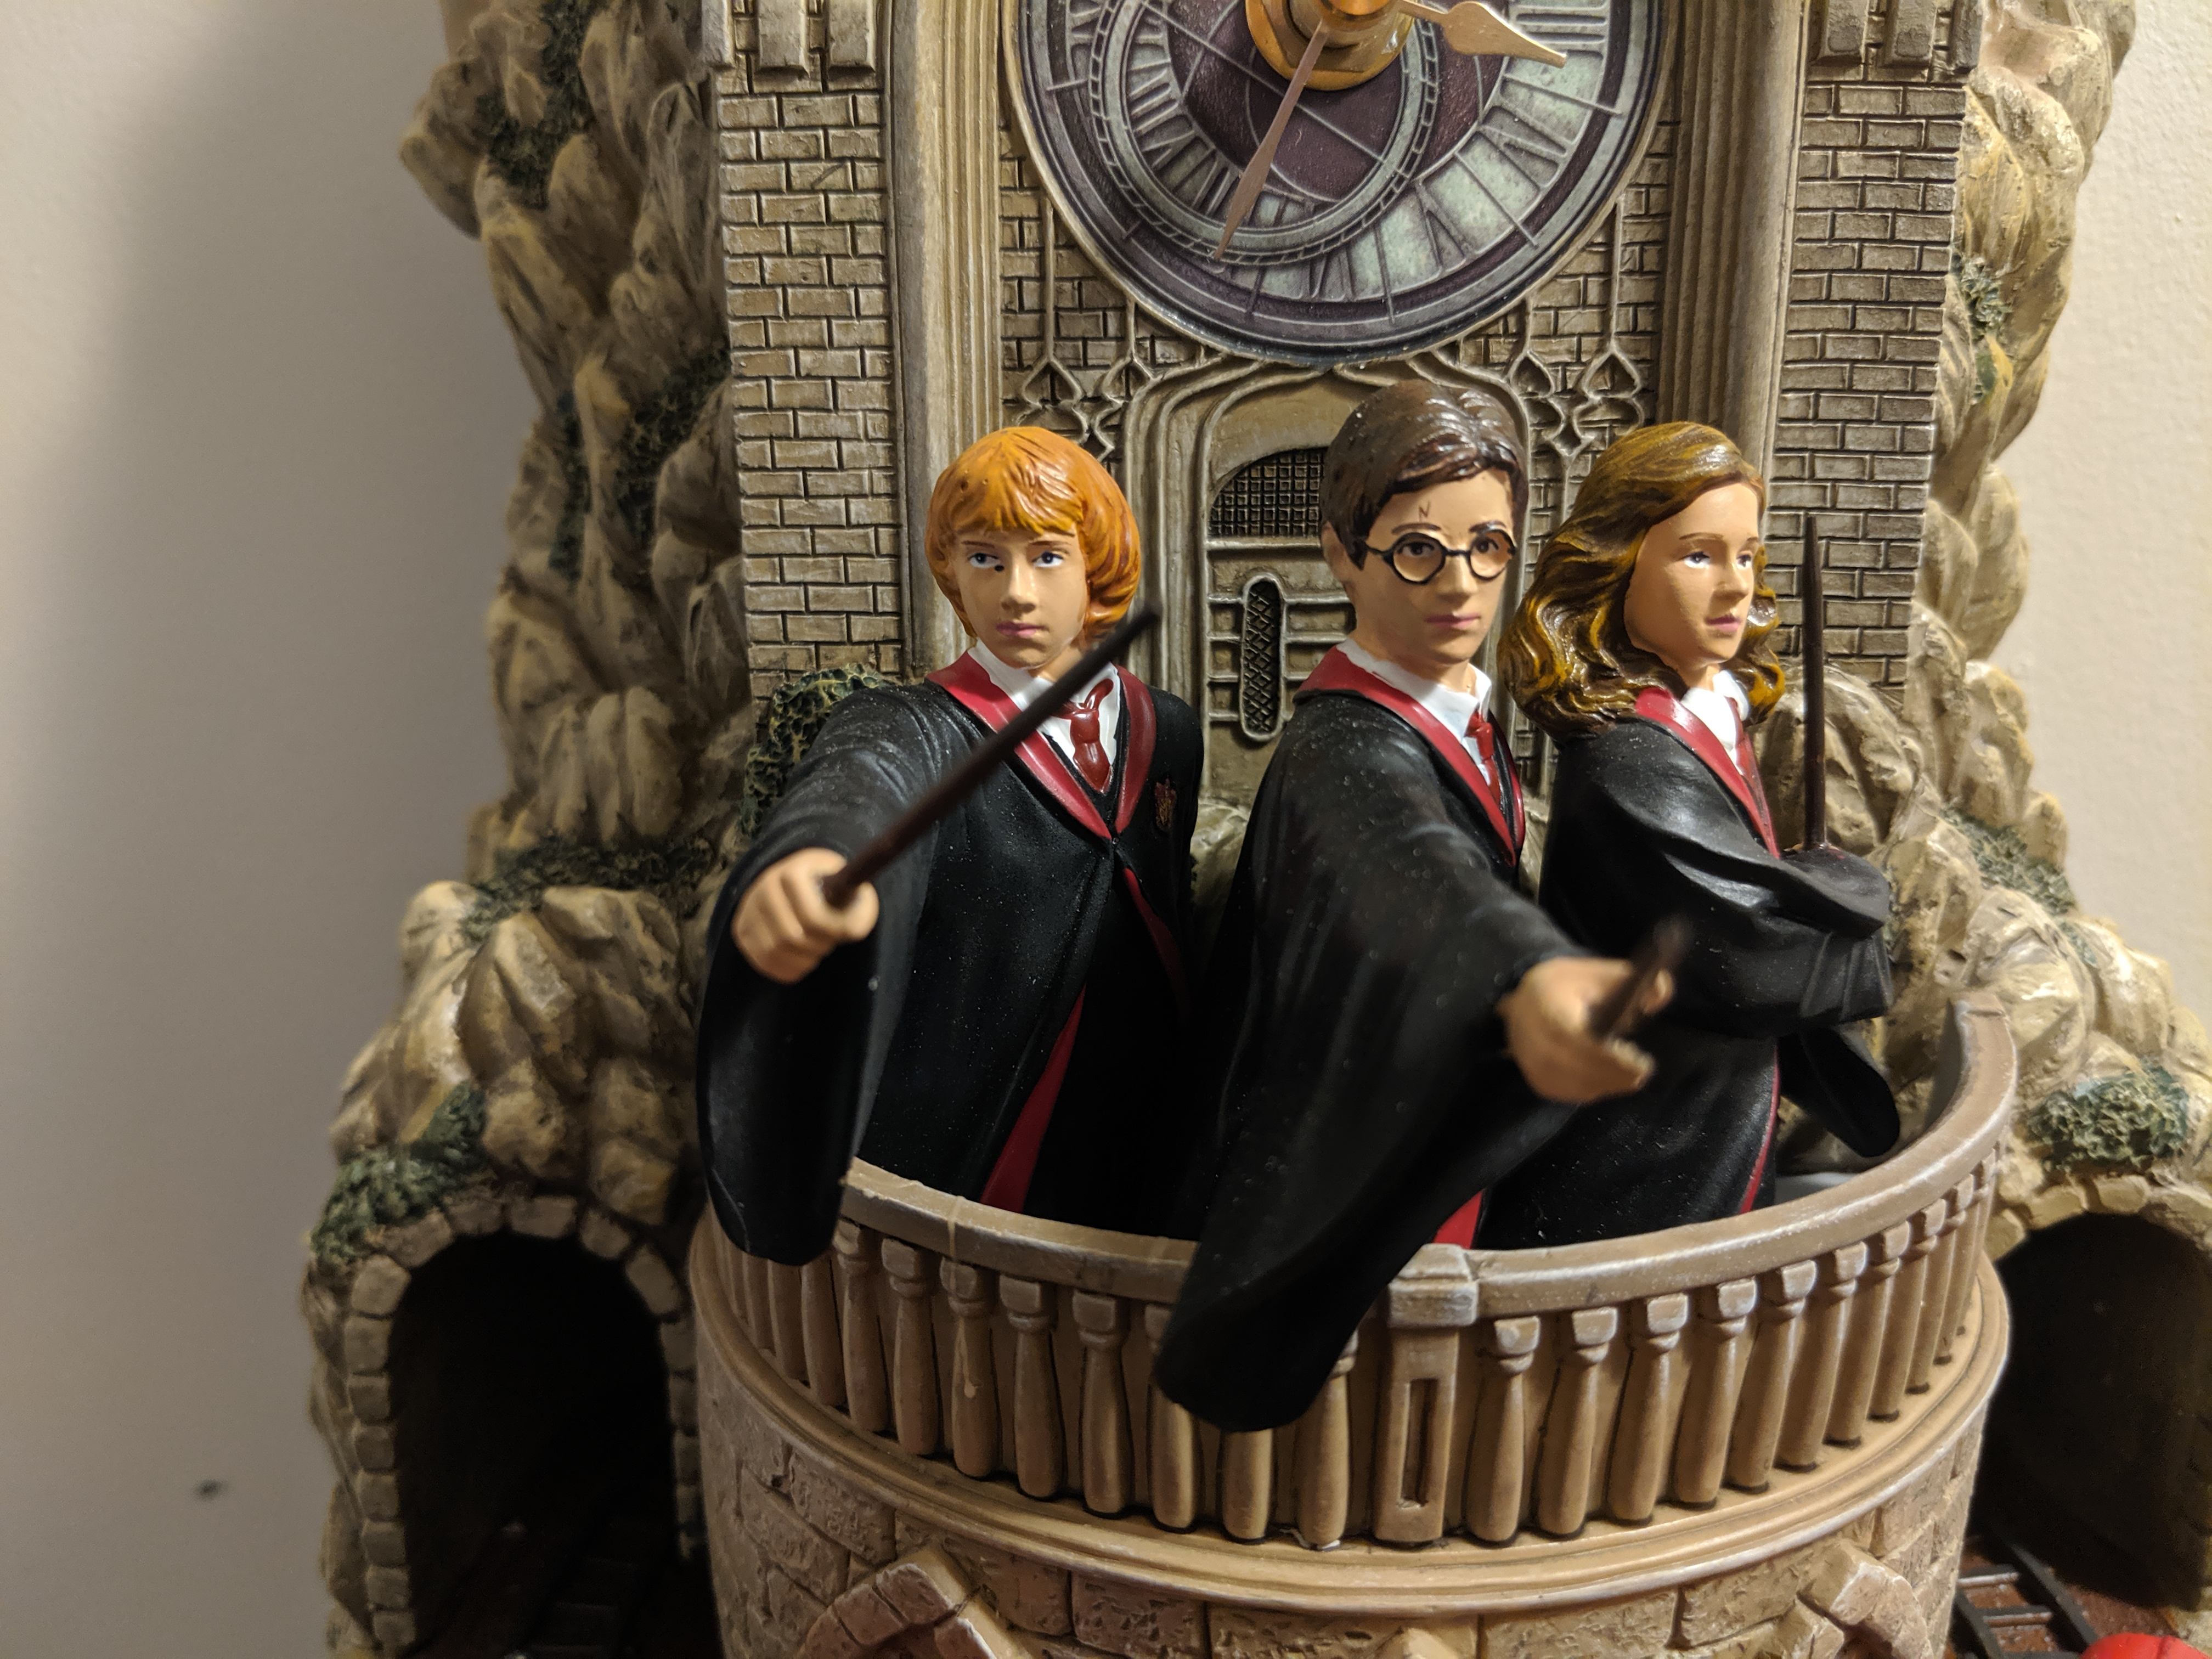 The wonderfully detailed Ron, Harry, and Hermione with wands at the ready